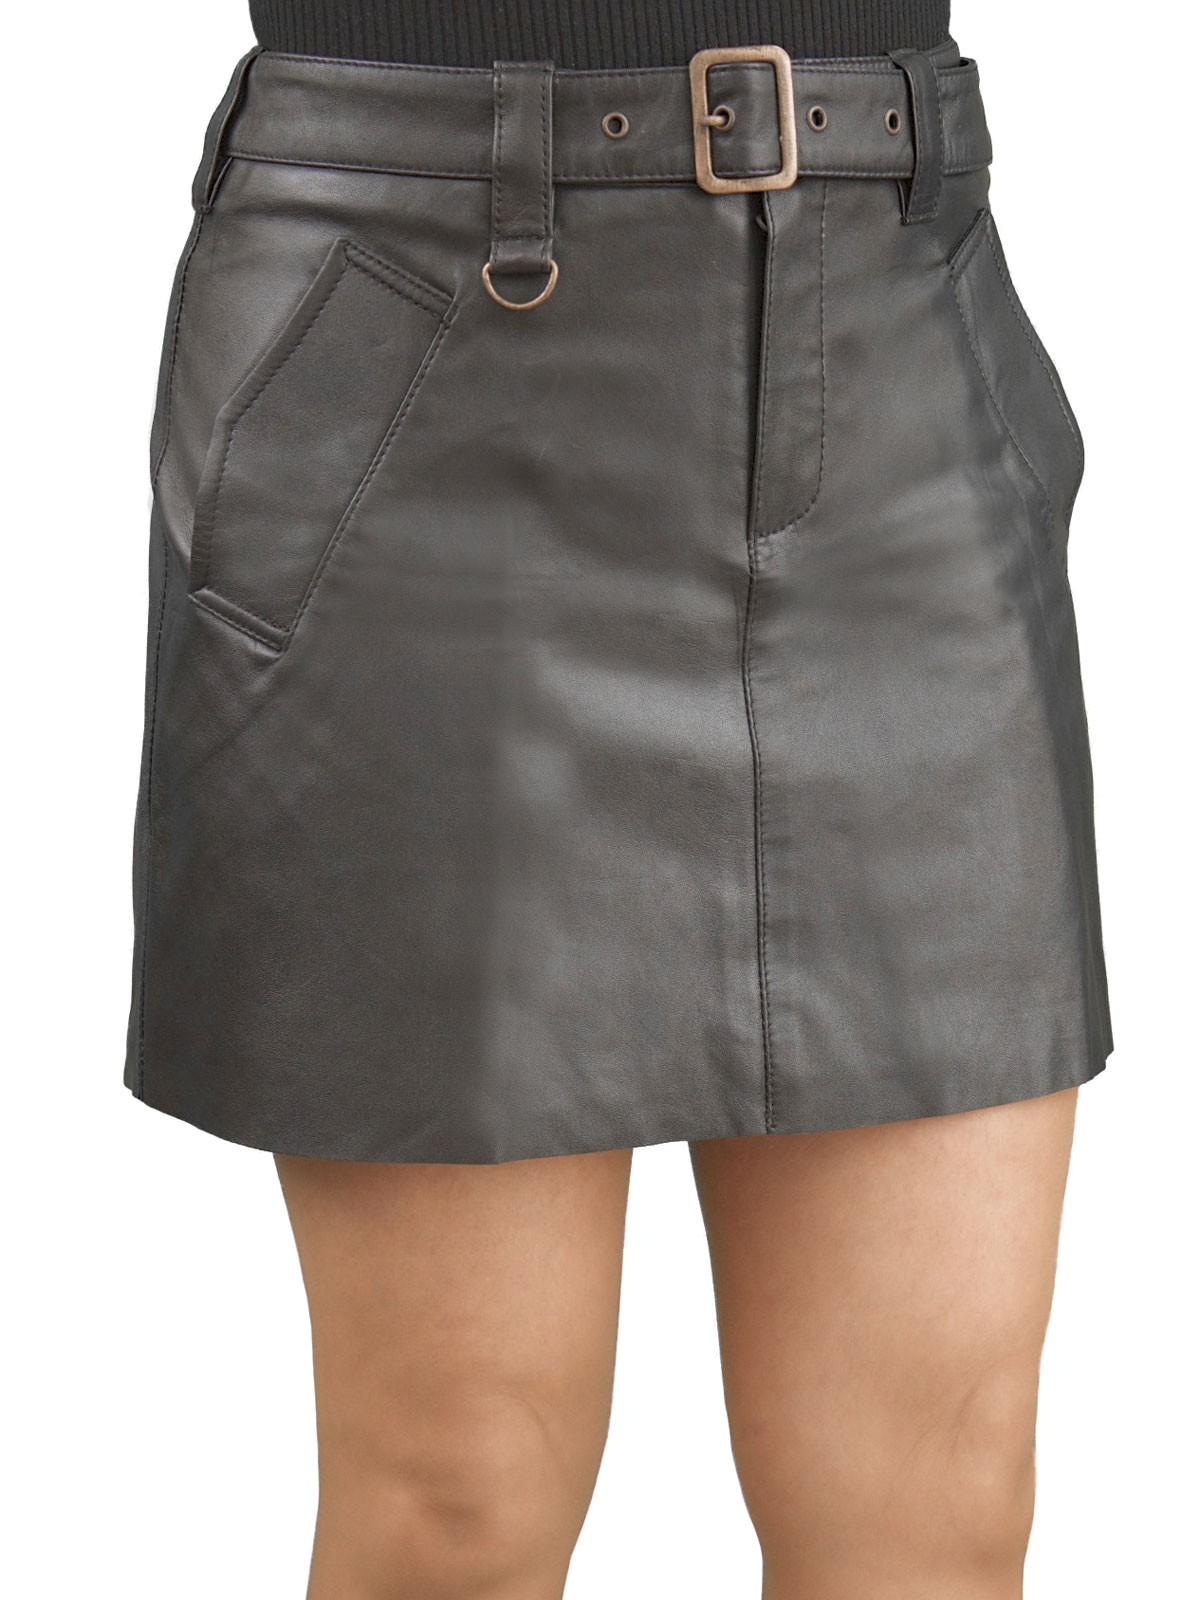 Black Leather Hipster Mini Skirt Buckle Belt Tout Ensemble